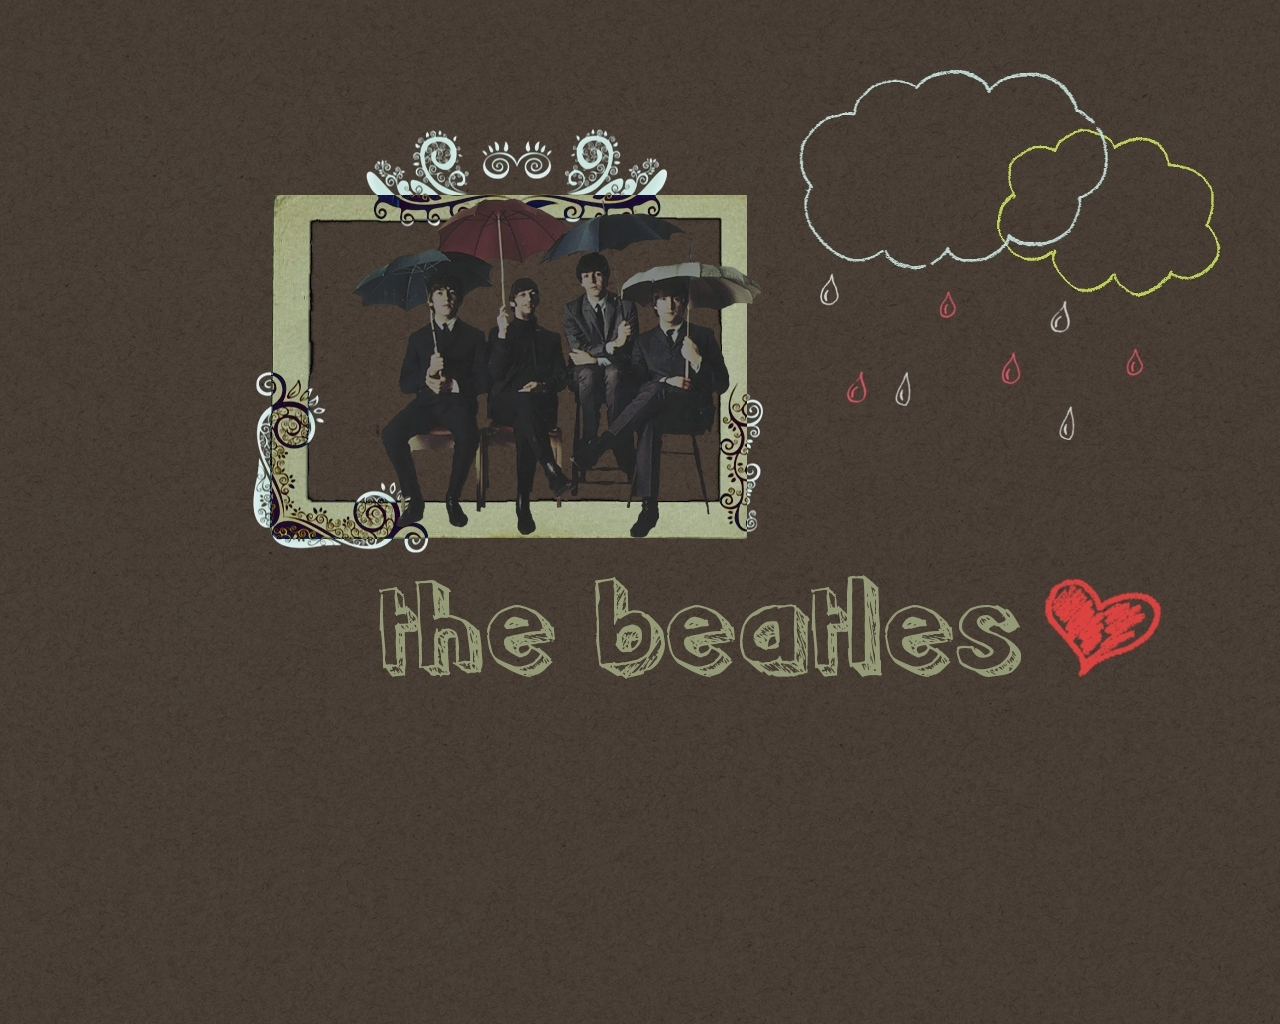 Beatles Wallpaper - The Beatles 1280x1024